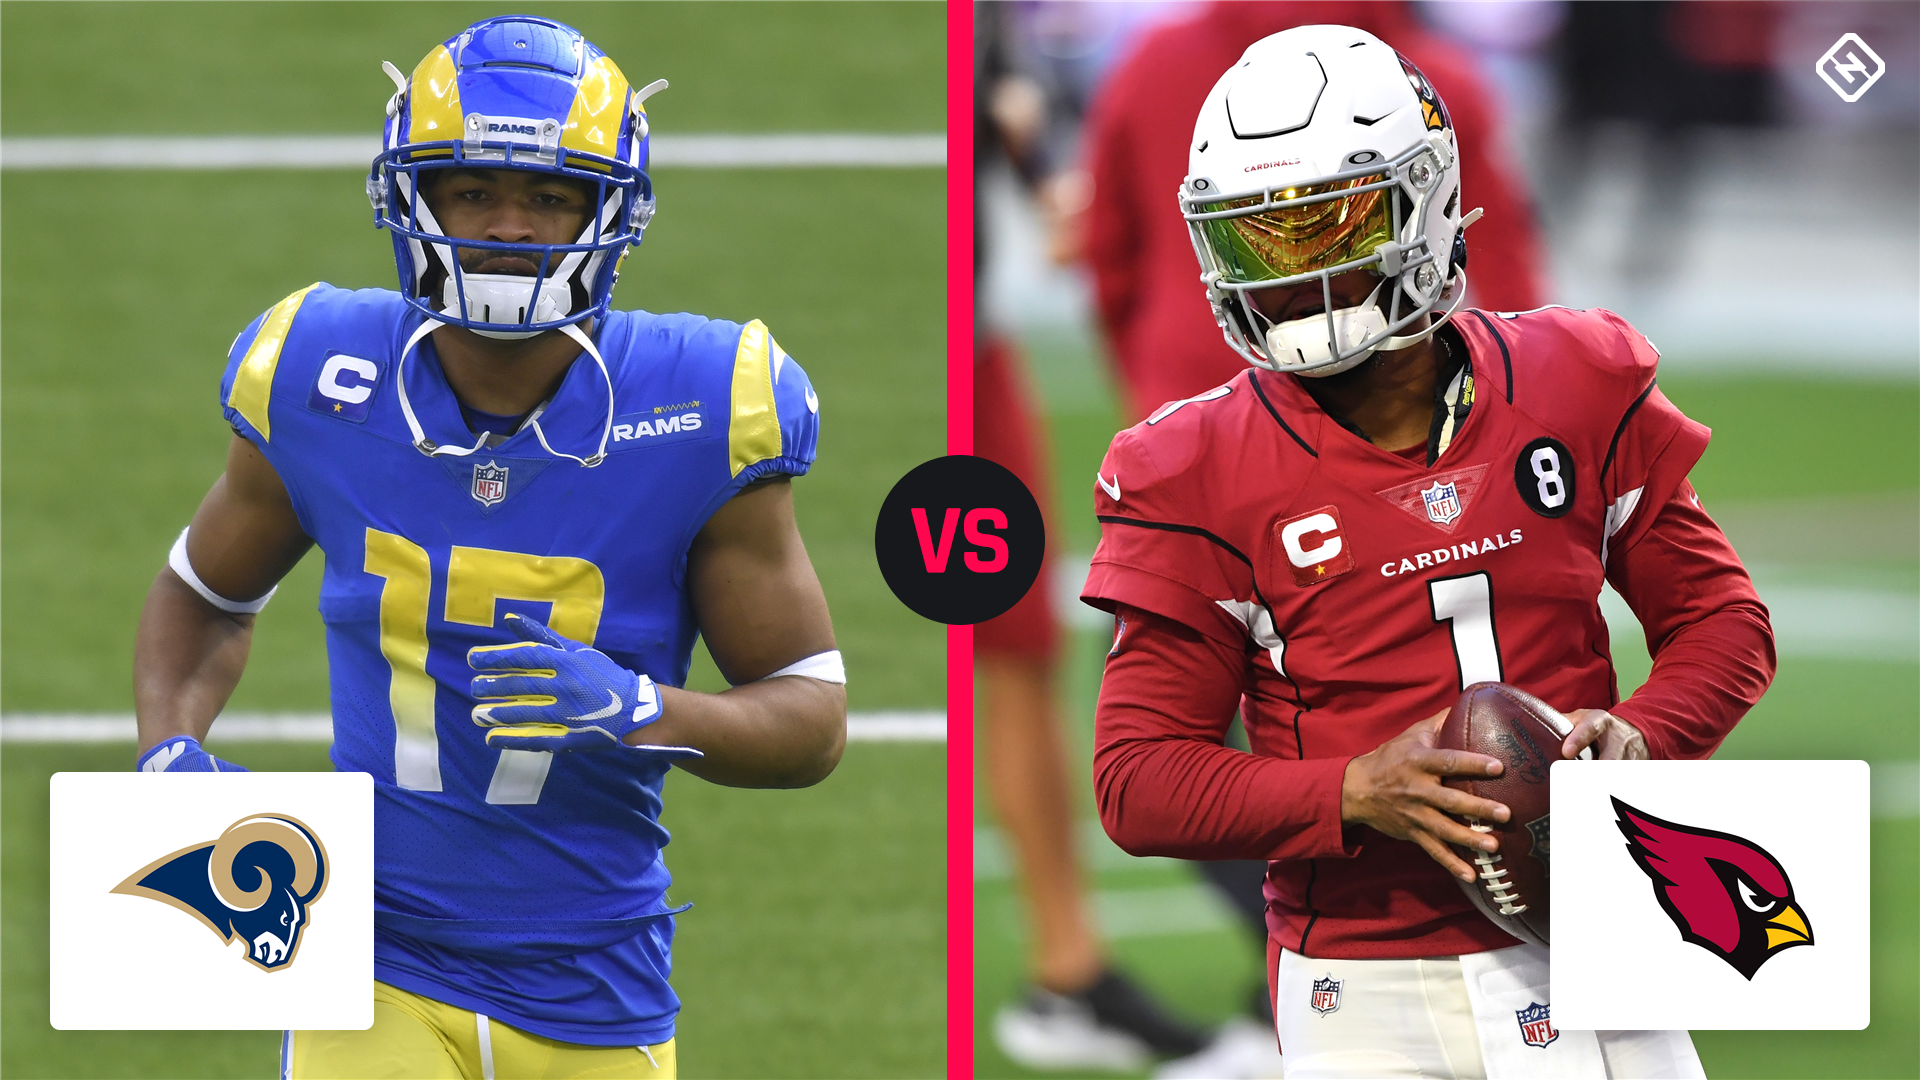 What Channel Is Rams Vs Cardinals On Today Time Tv Schedule For Nfl Week 17 Game Sports Grind Entertainment